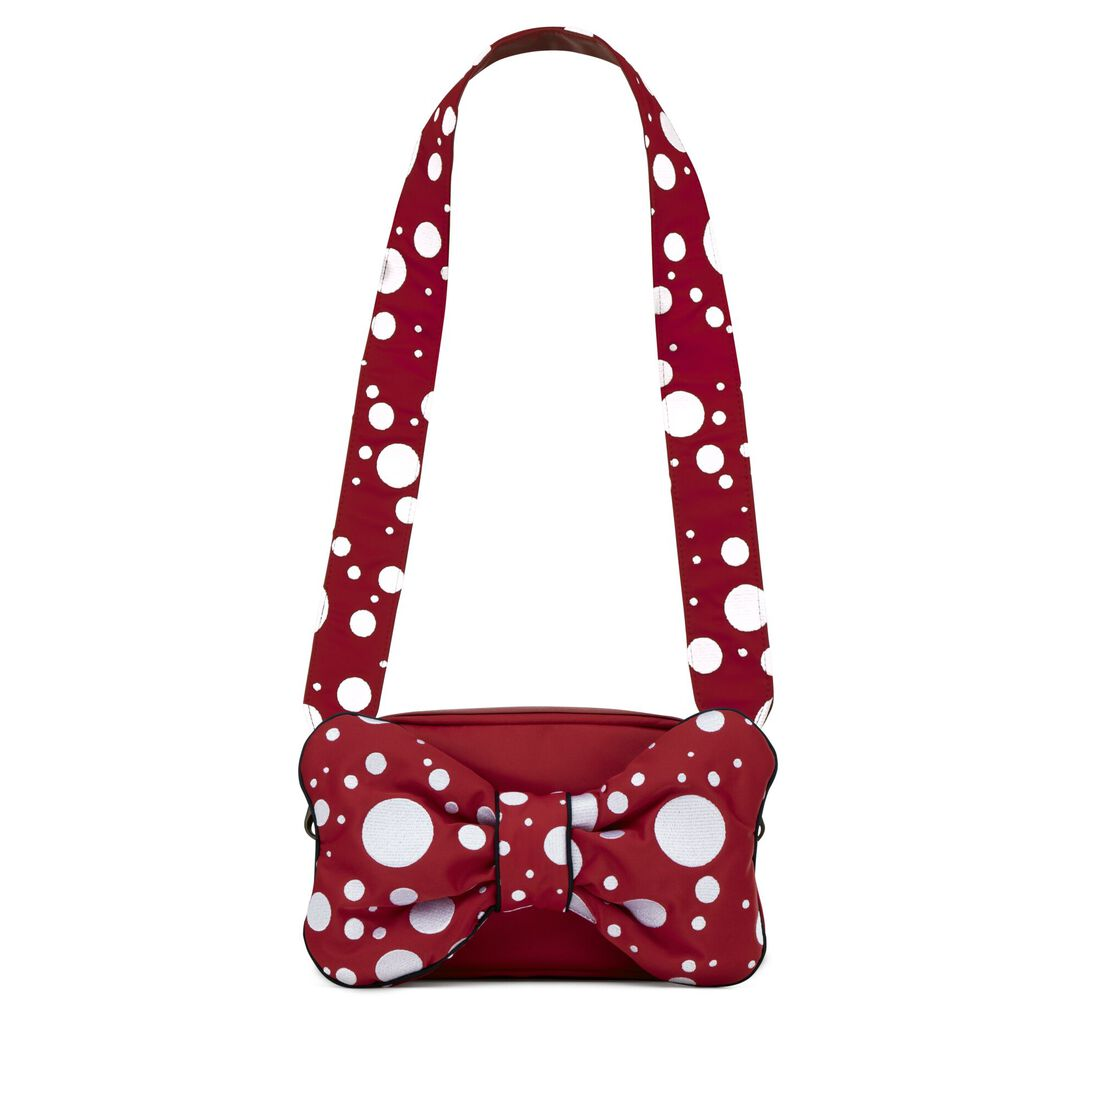 CYBEX Essential Bag - Petticoat Red in Petticoat Red large image number 3